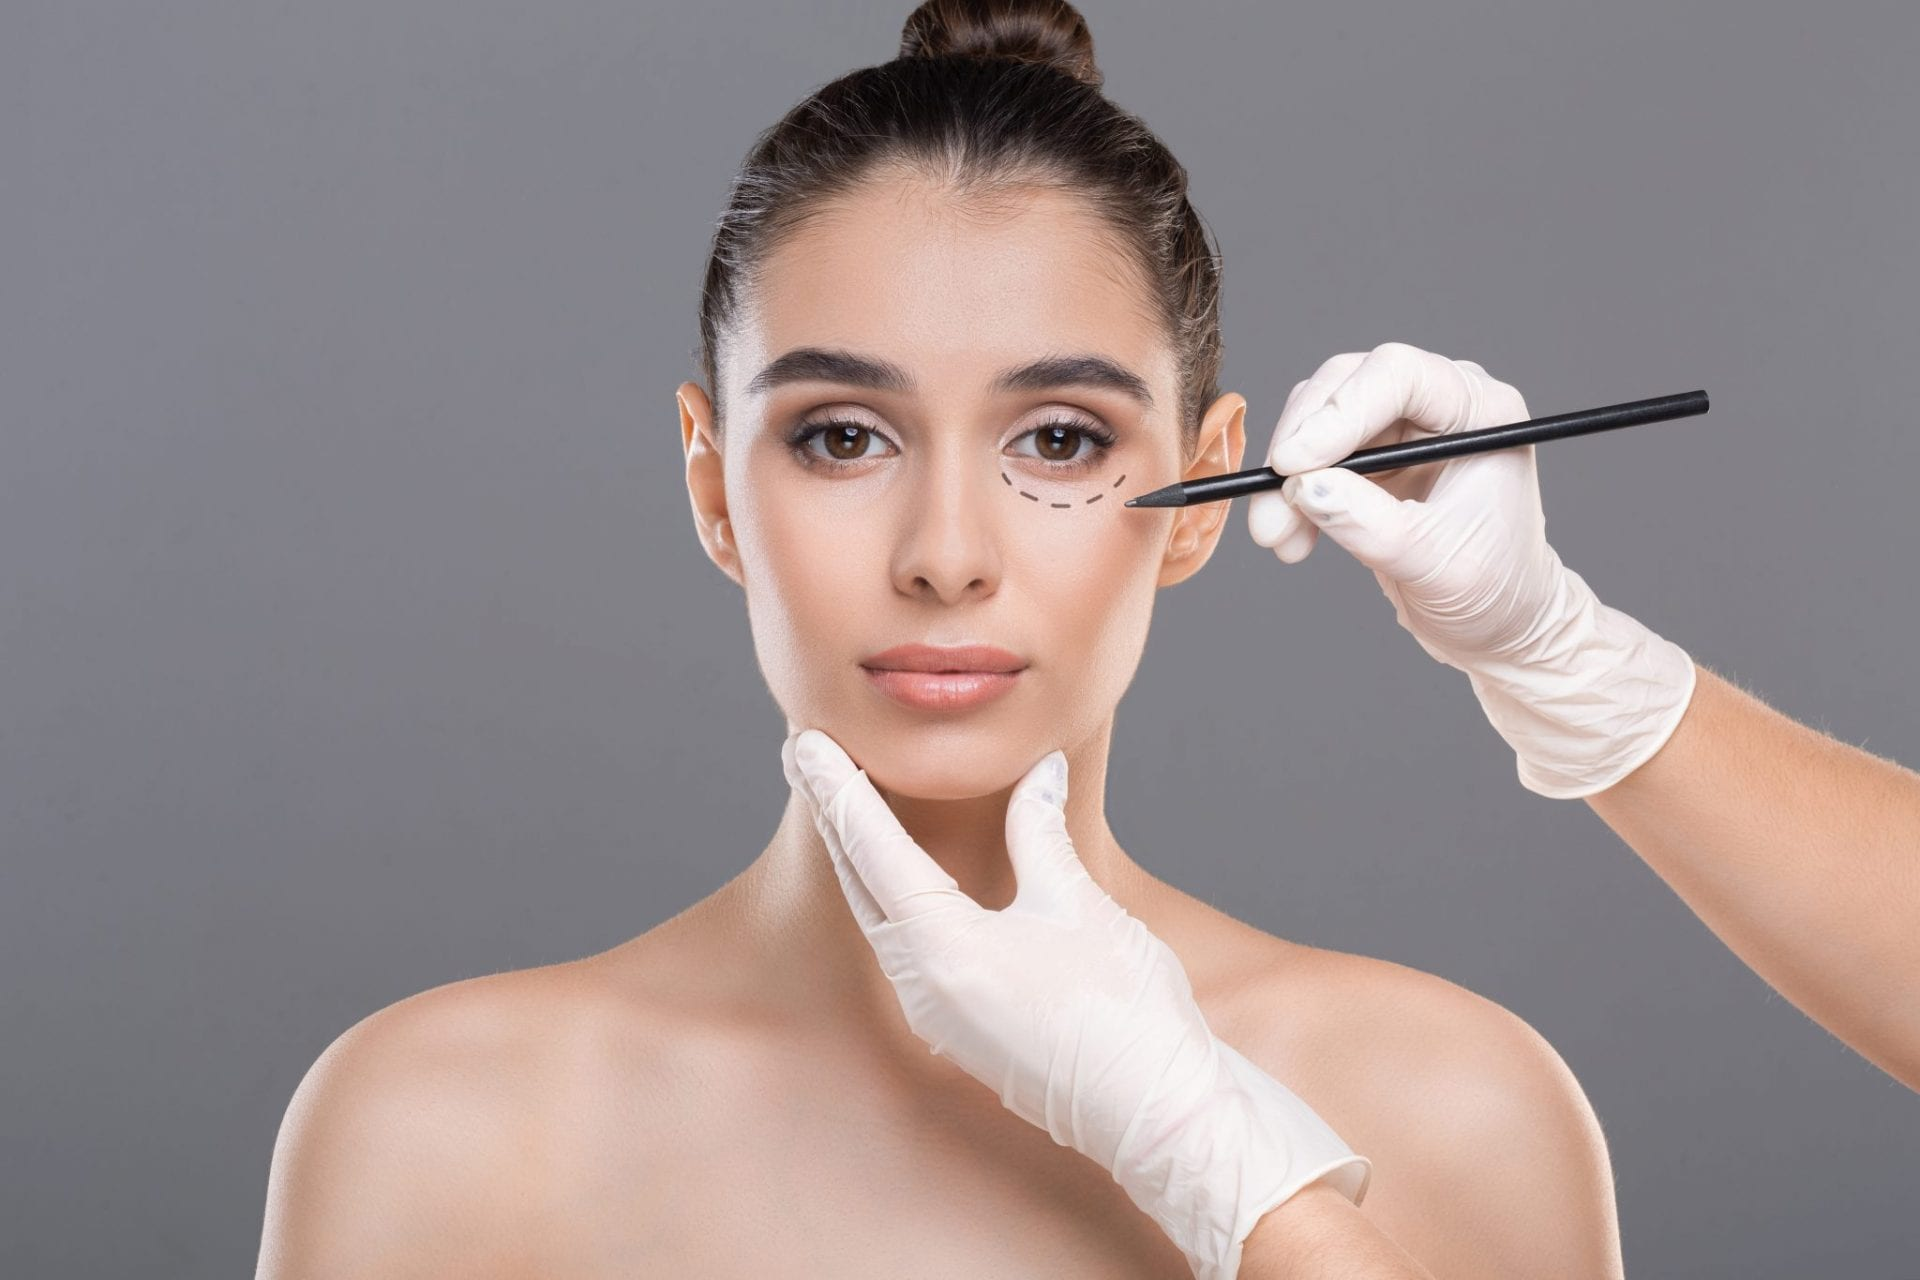 Doctor drawing marks on female face before procedure